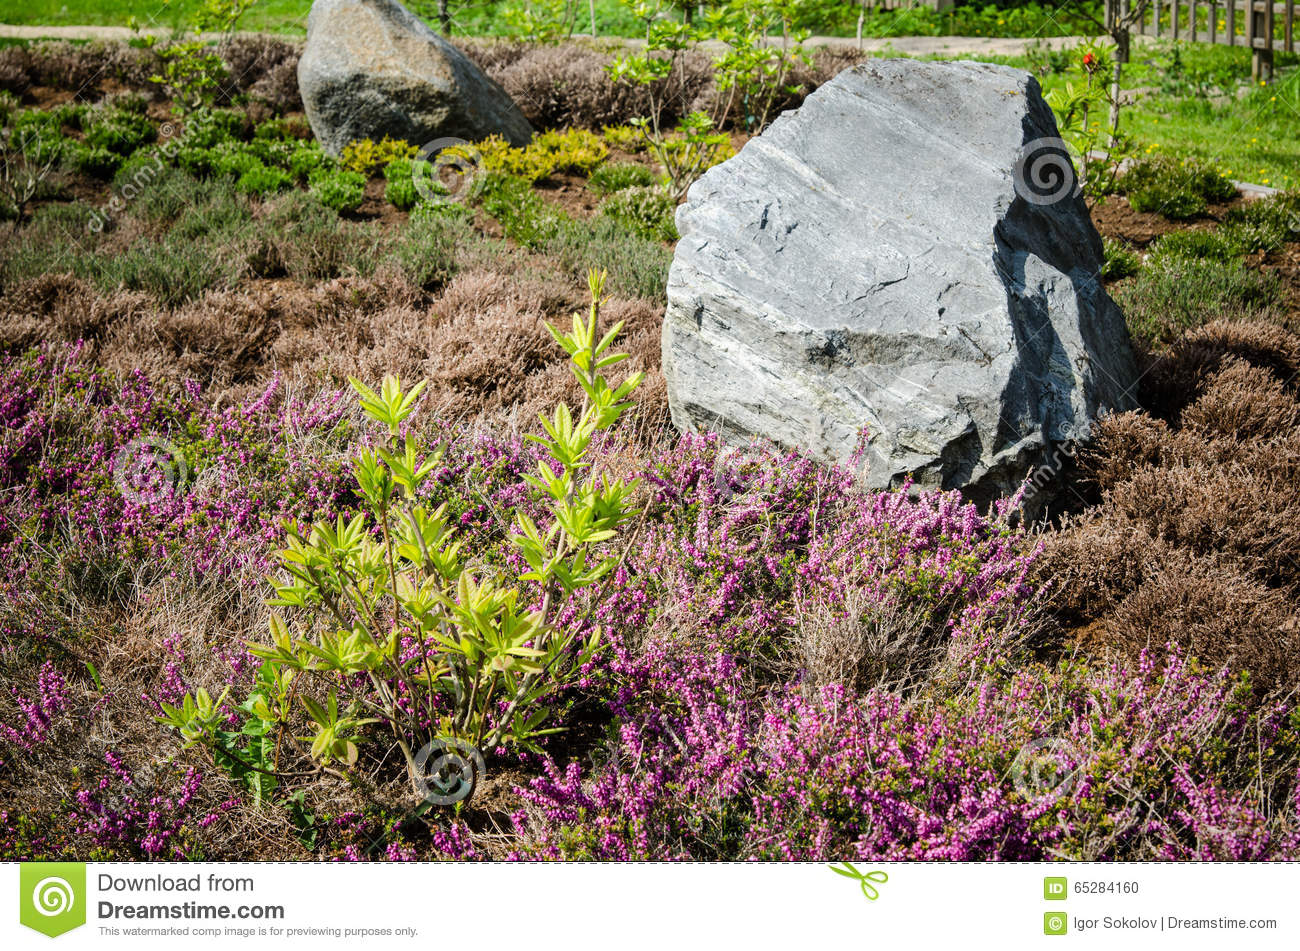 Download Decorative Flower Bed In A Garden With Rocks And Plants Stock  Photo   Image Of